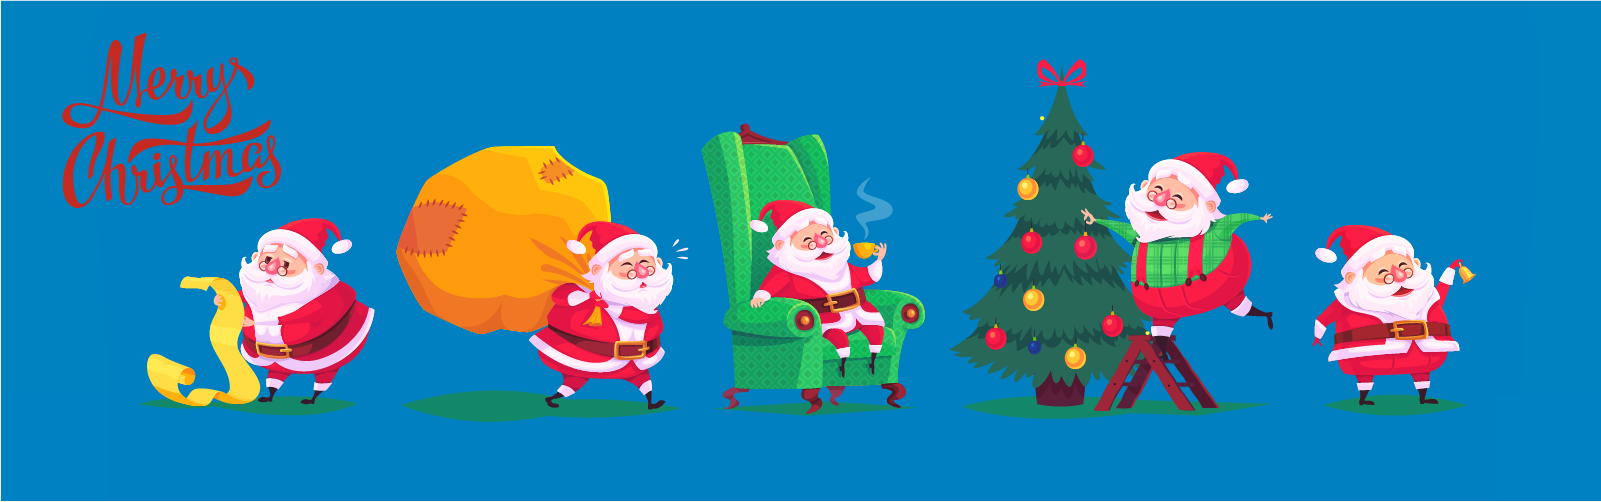 banner for Christmas messages